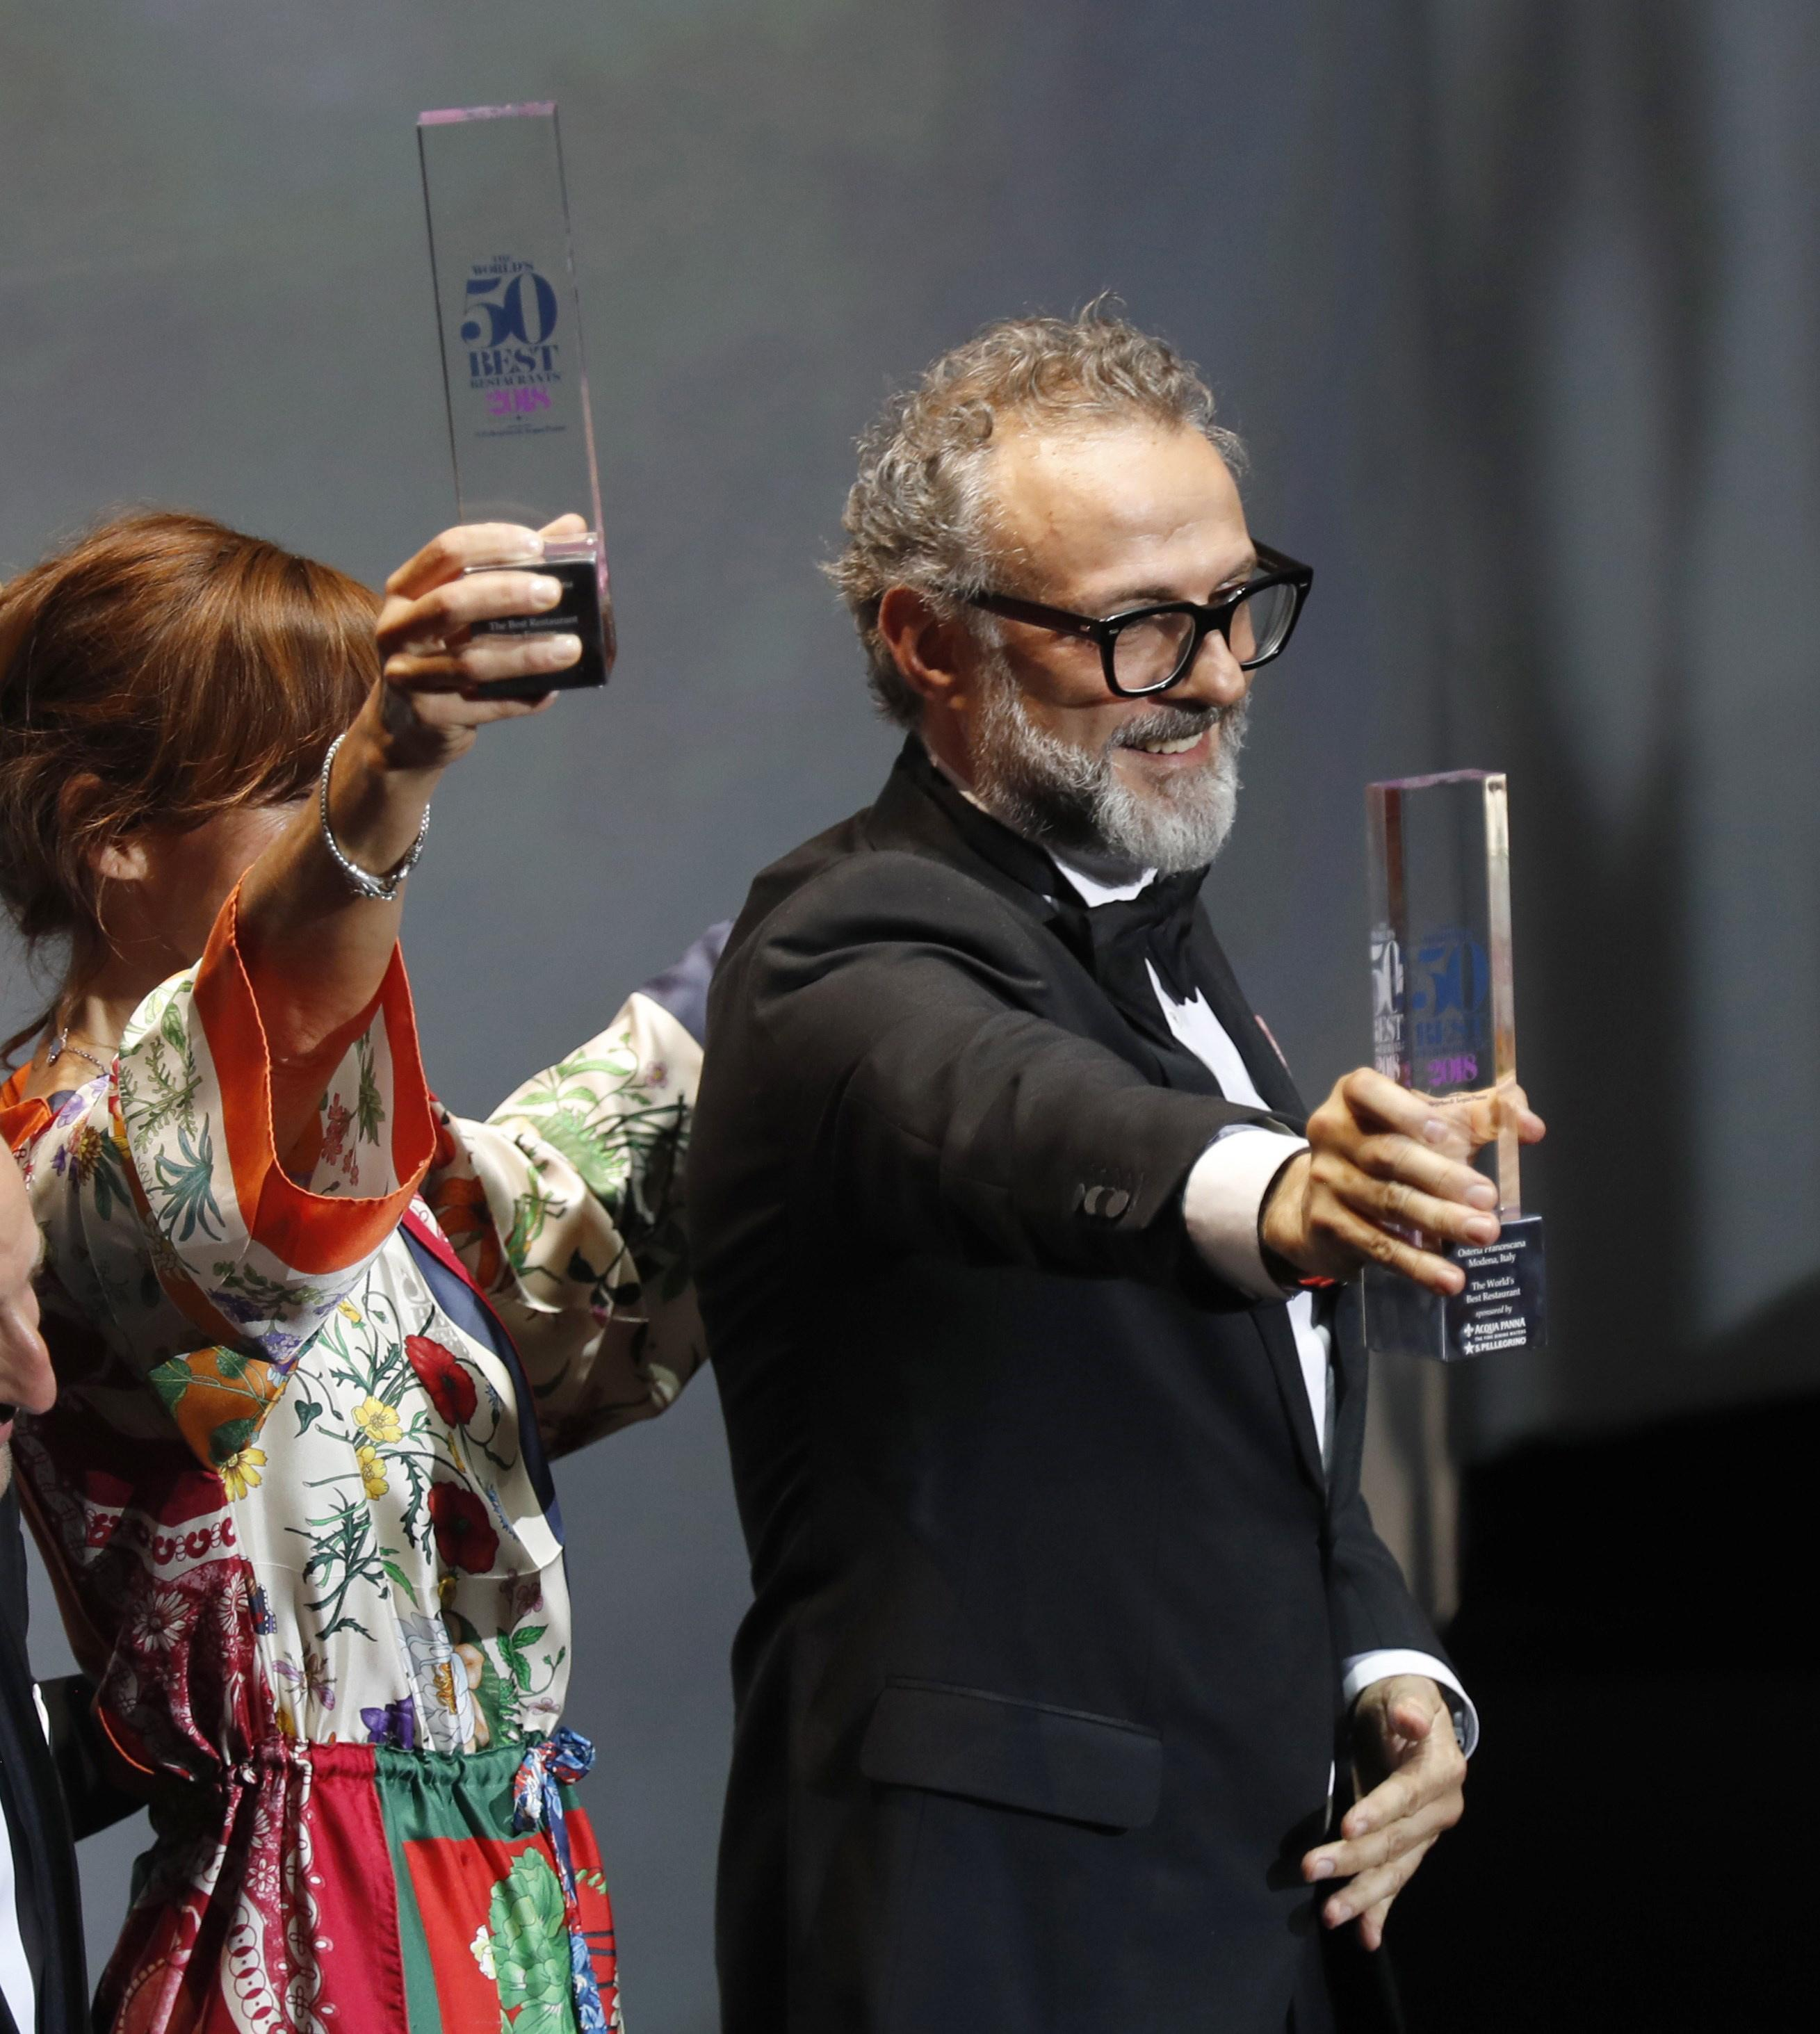 Italian Osteria Francescana named Best Restaurant 2018